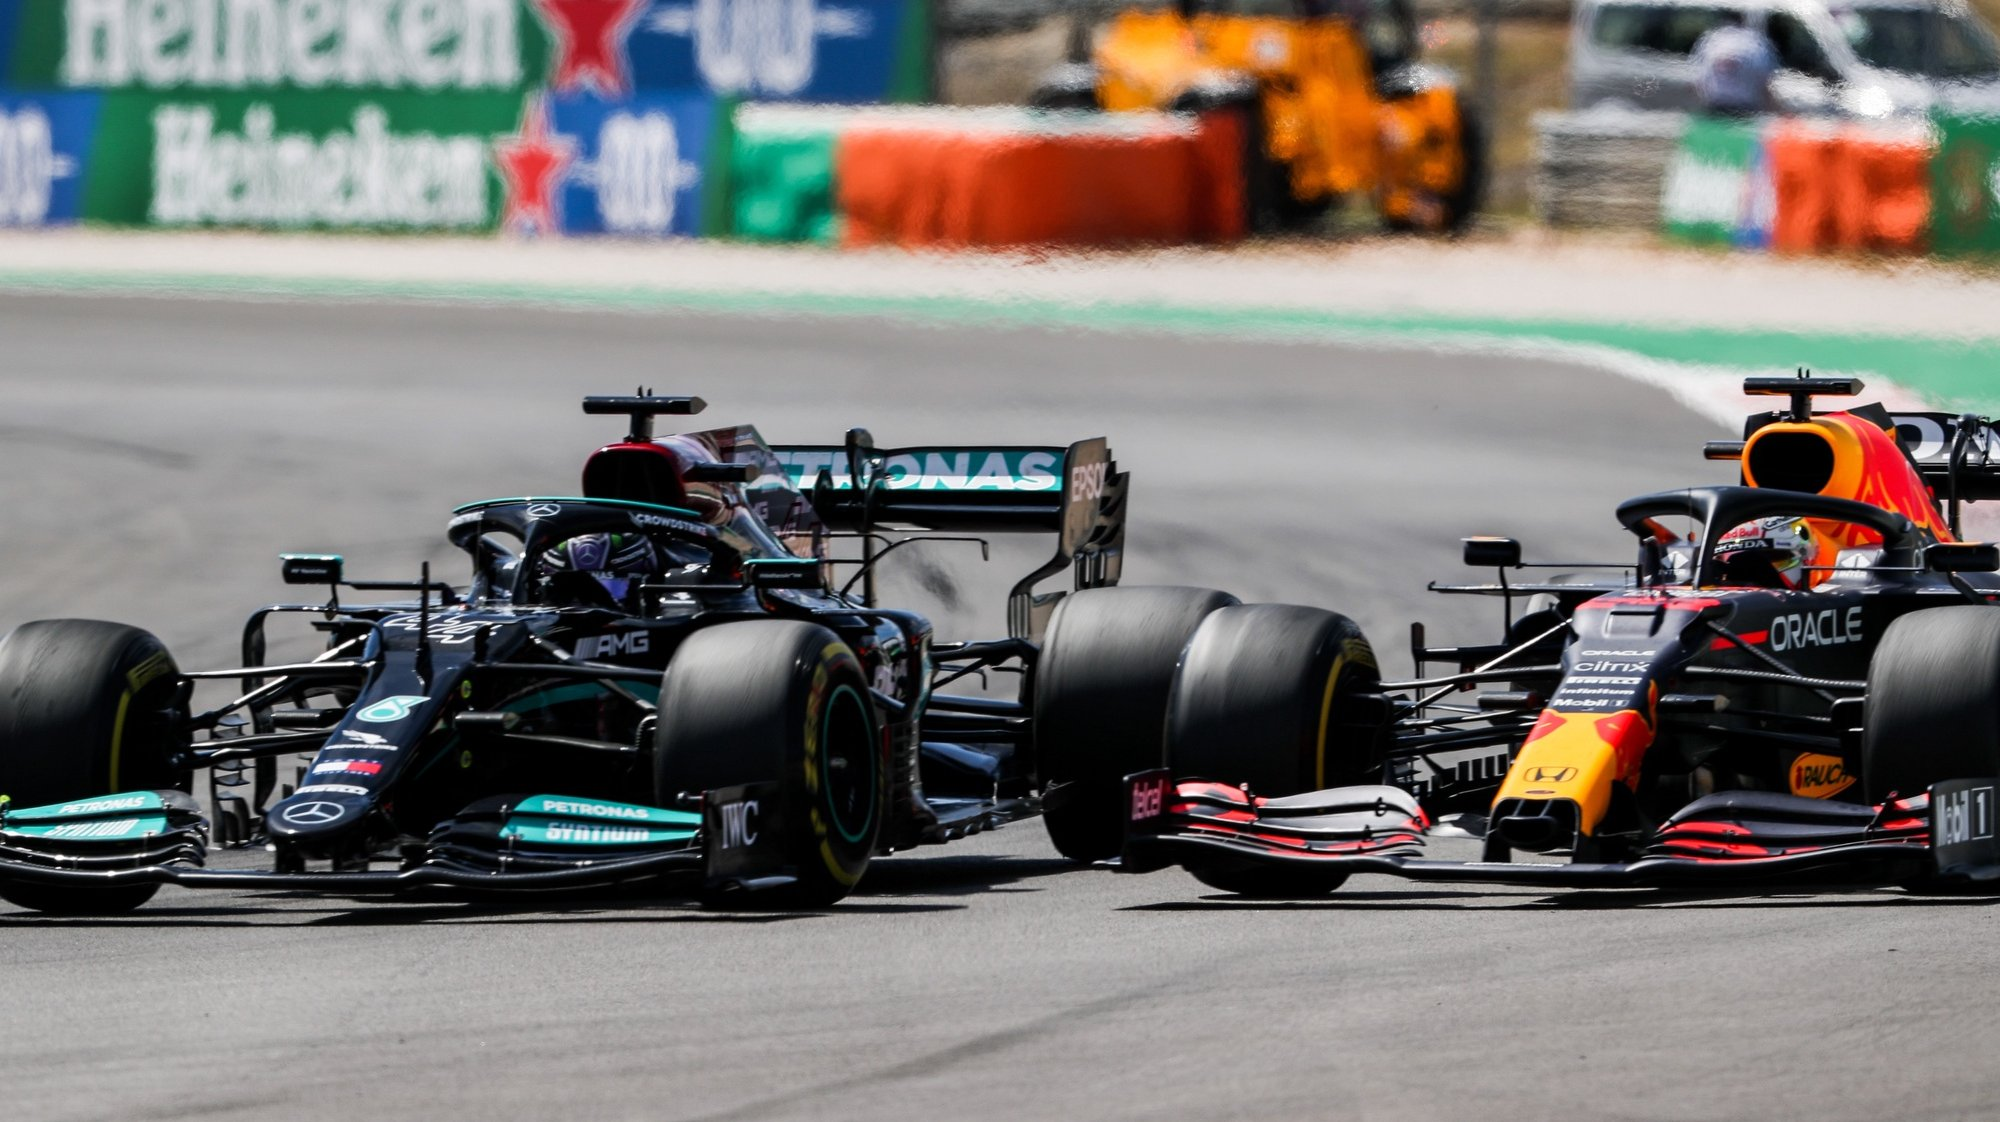 epa09174306 British Formula One driver Lewis Hamilton (L) of Mercedes-AMG Petronas is on his way to win the 2021 Formula One Grand Prix of Portugal at the Autodromo Internacional do Algarve near Portimao, Portugal, 02 May 2021. Hamilton won ahead of second placed Dutch driver Max Verstappen (R) of Red Bull Racing.  EPA/JOSE SENA GOULAO